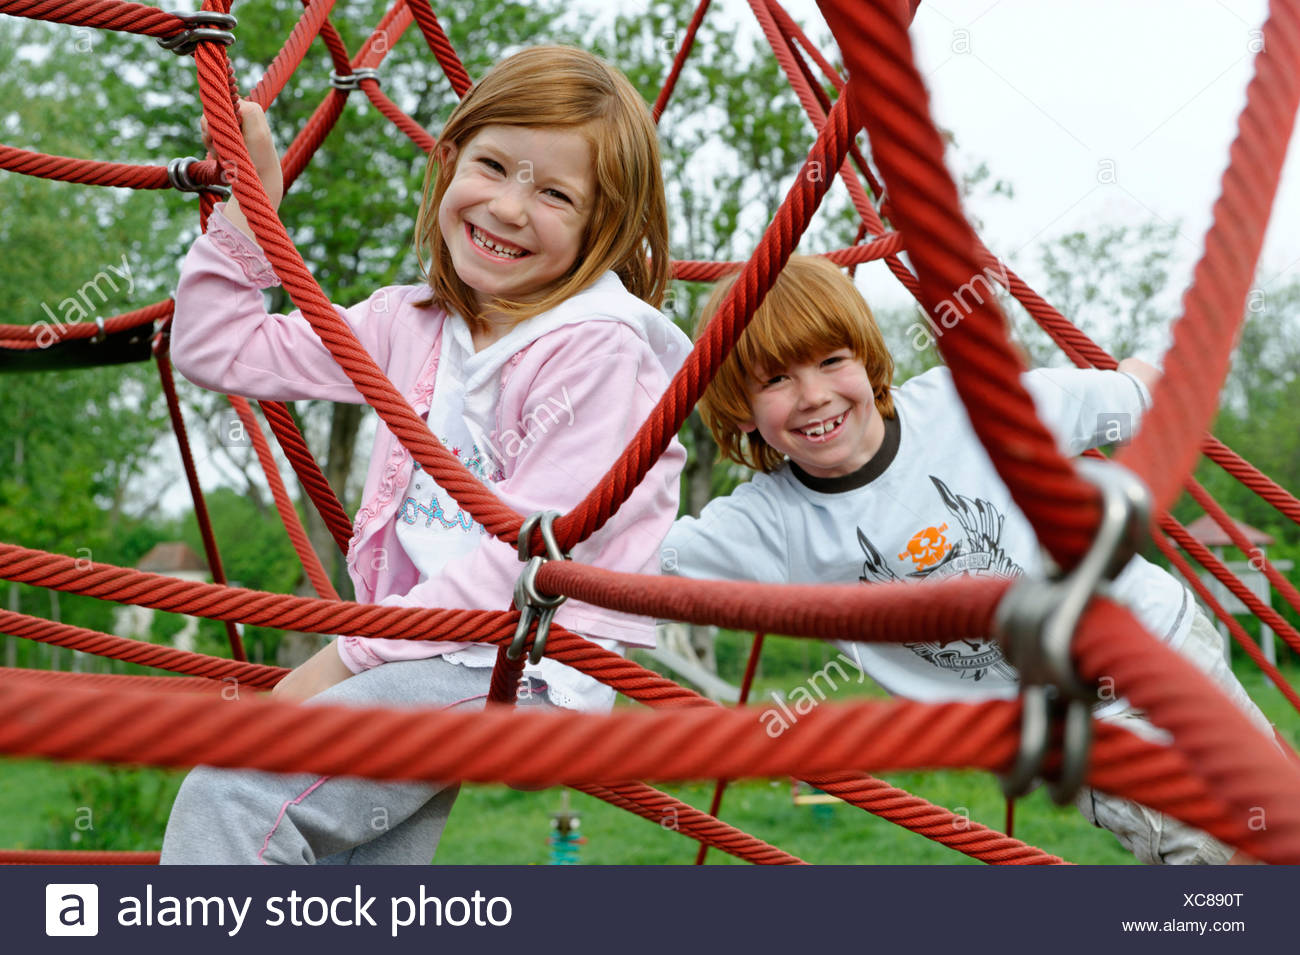 Children at the playground - Stock Image